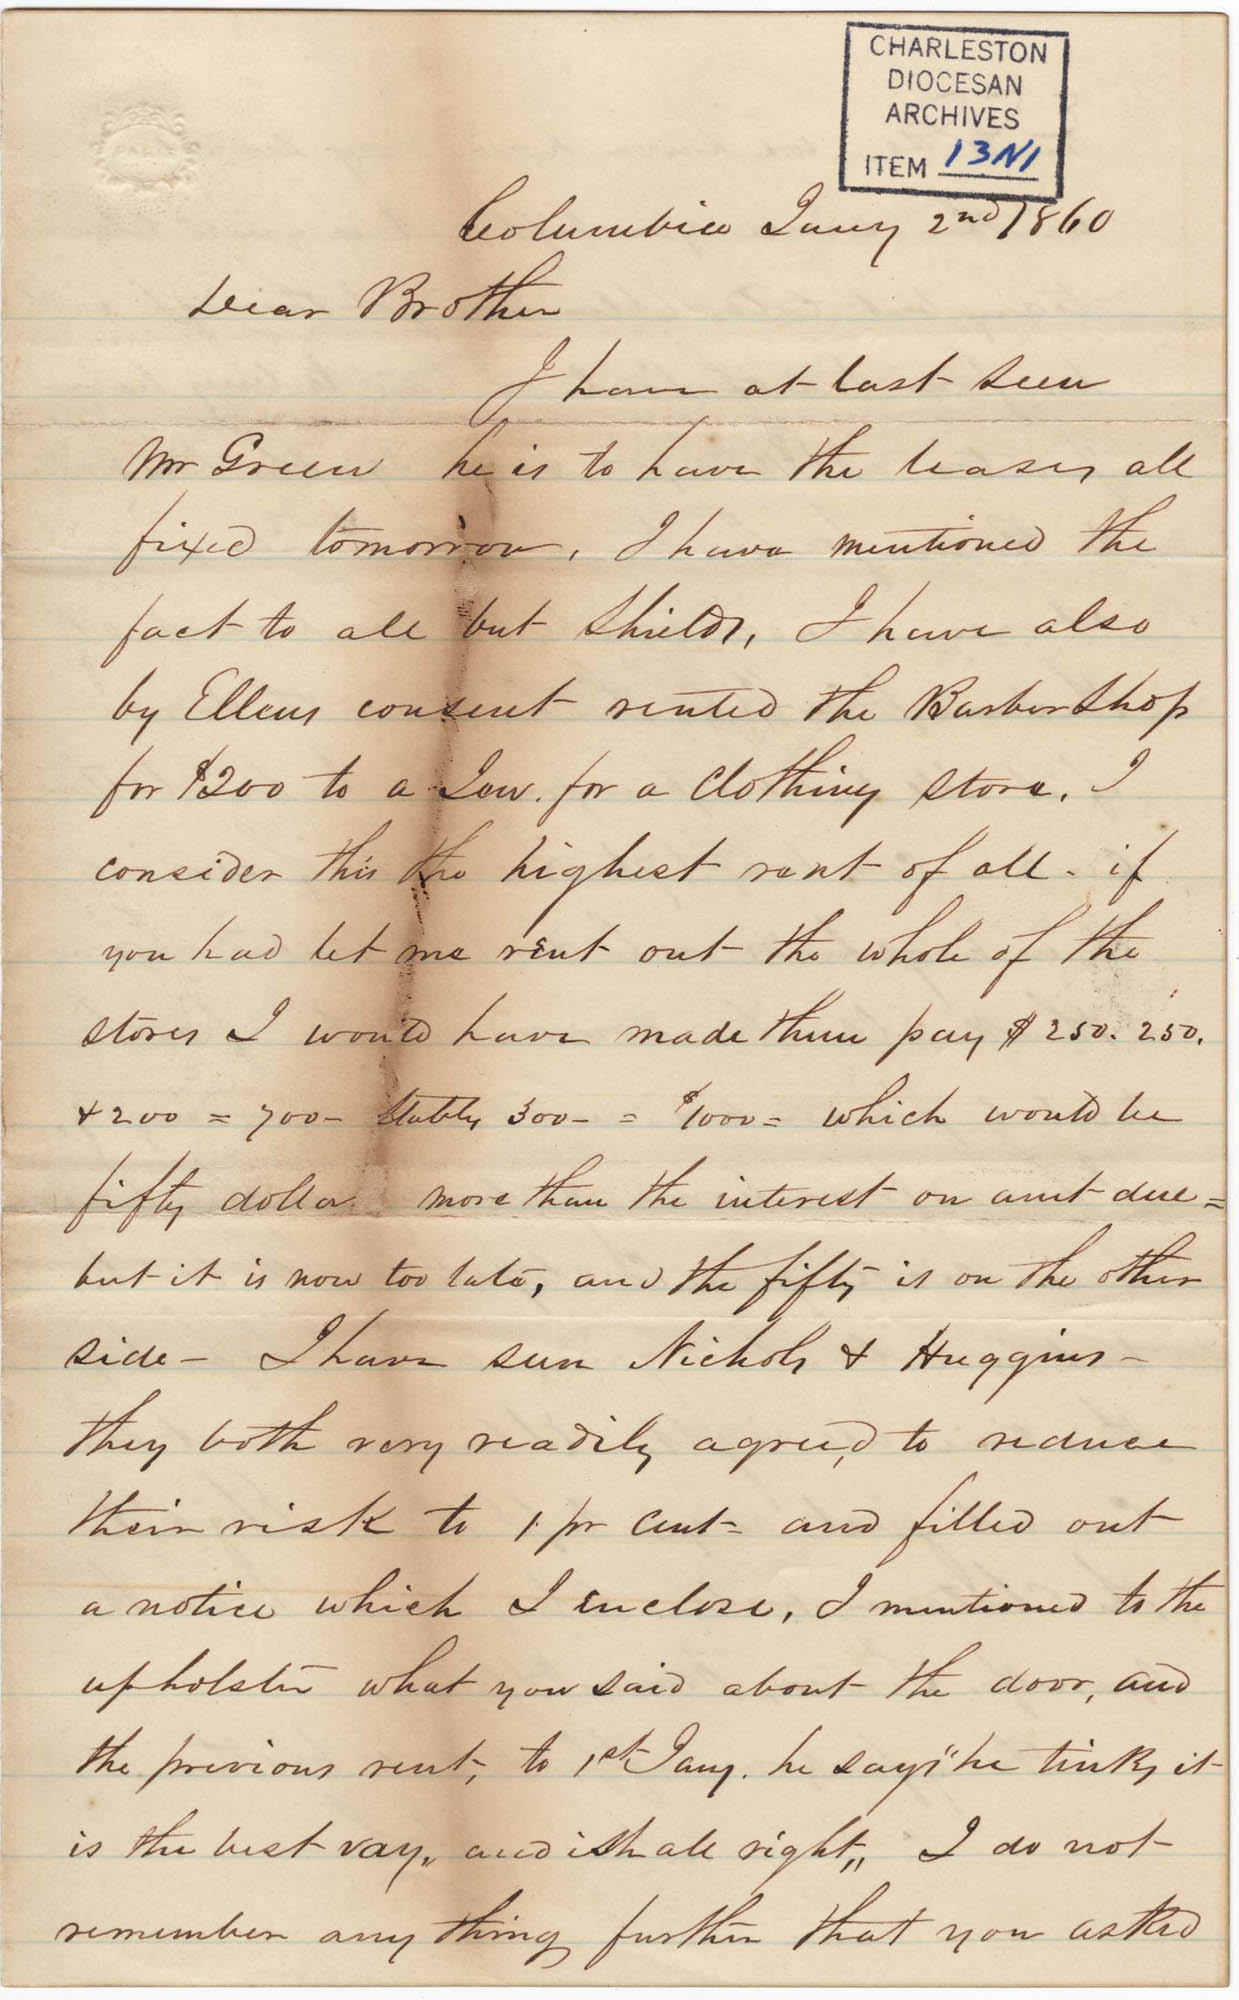 090. John Lynch to Bp Patrick Lynch -- January 2, 1860